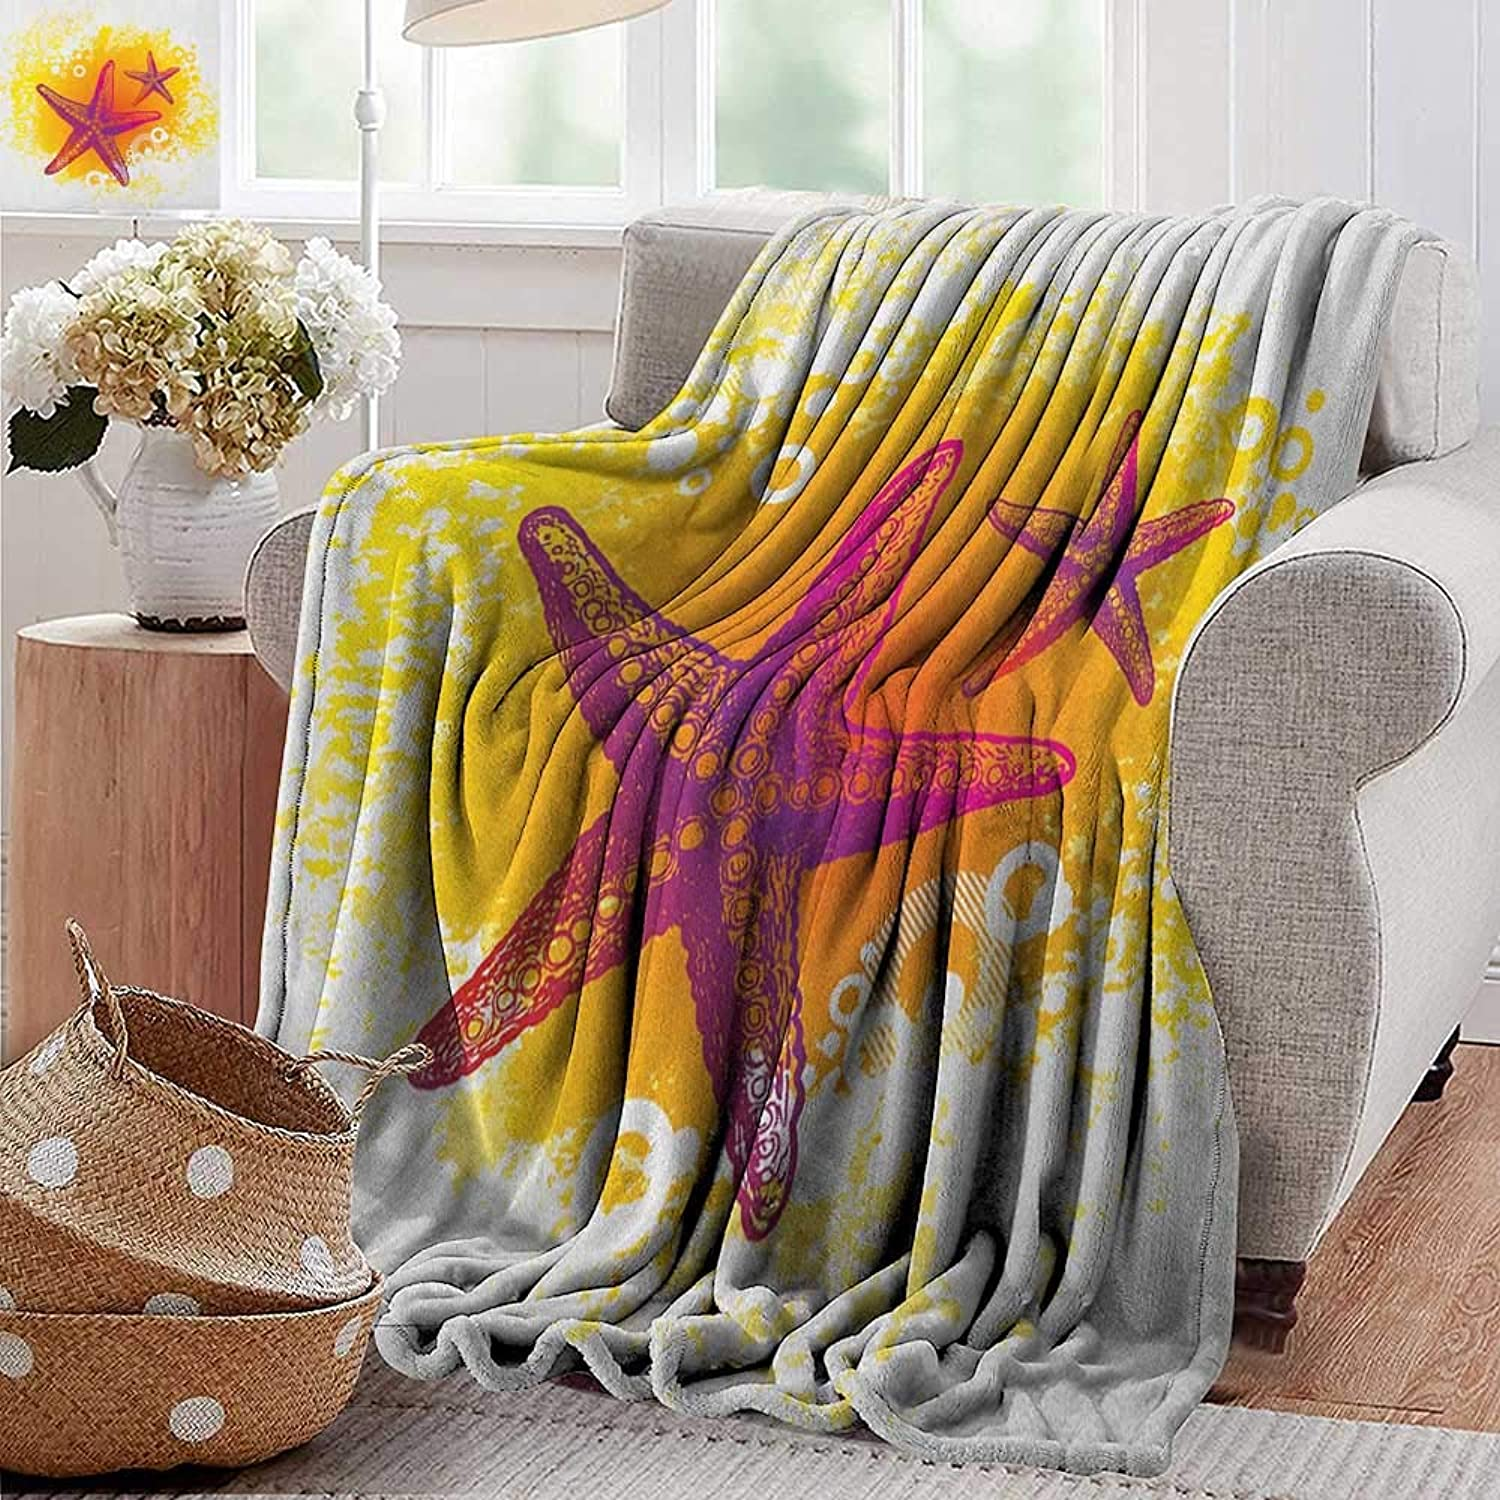 XavieraDoherty Summer Blanket,Starfish,Vibrant colord Tropic Animals and Artistic Bubbles Tranquil Scene, Fuchsia Hot Pink Yellow,300GSM, Super Soft and Warm, Durable 50 x60